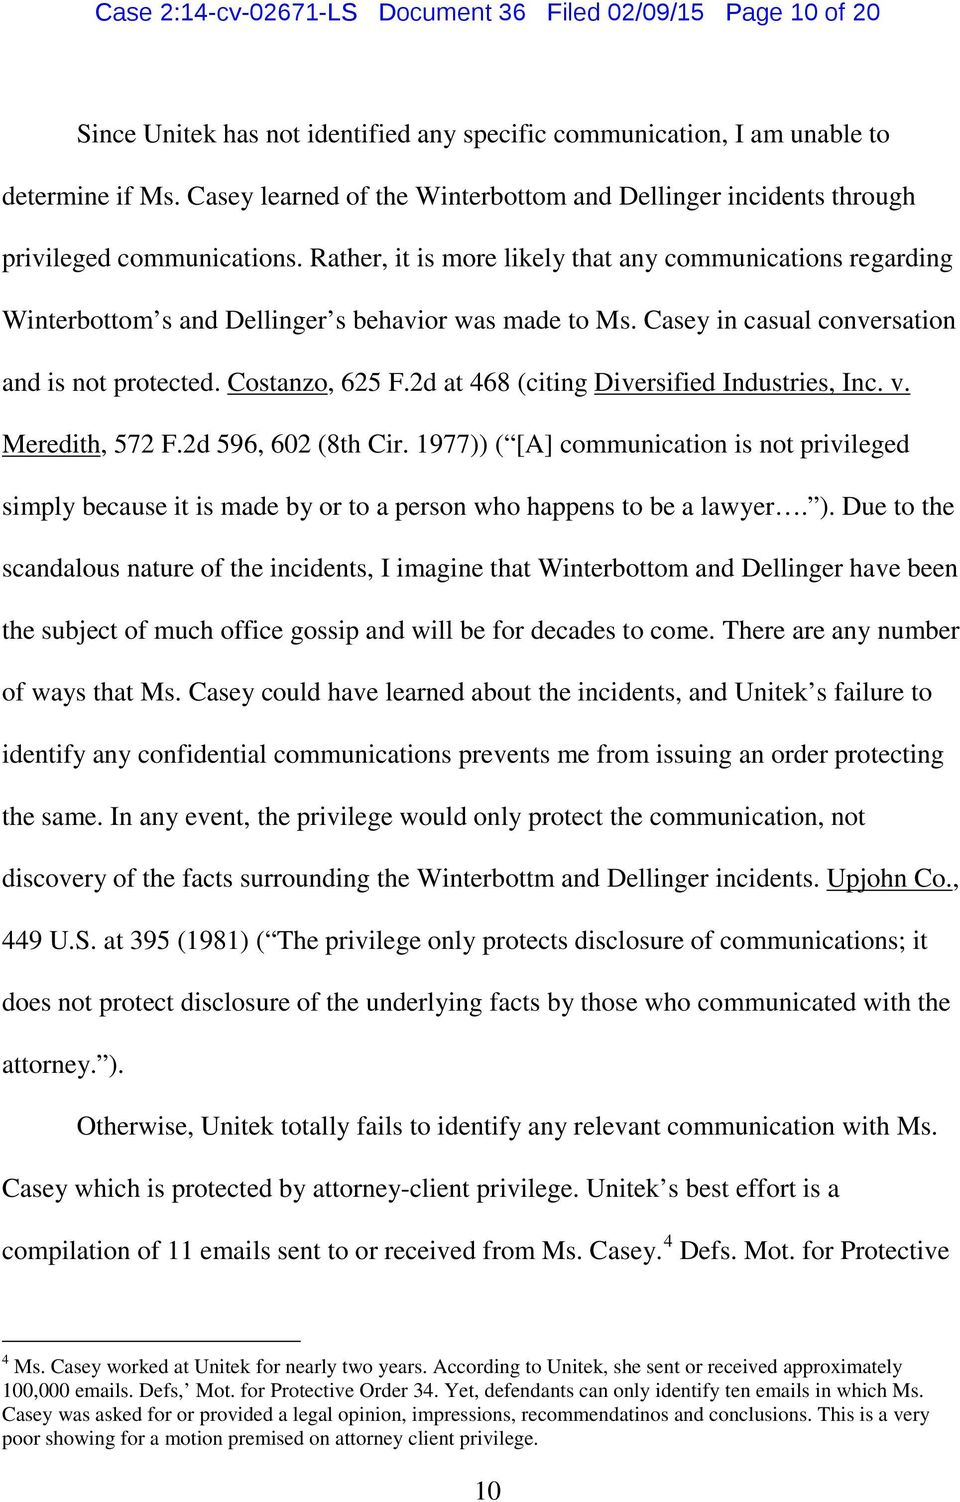 Rather, it is more likely that any communications regarding Winterbottom s and Dellinger s behavior was made to Ms. Casey in casual conversation and is not protected. Costanzo, 625 F.